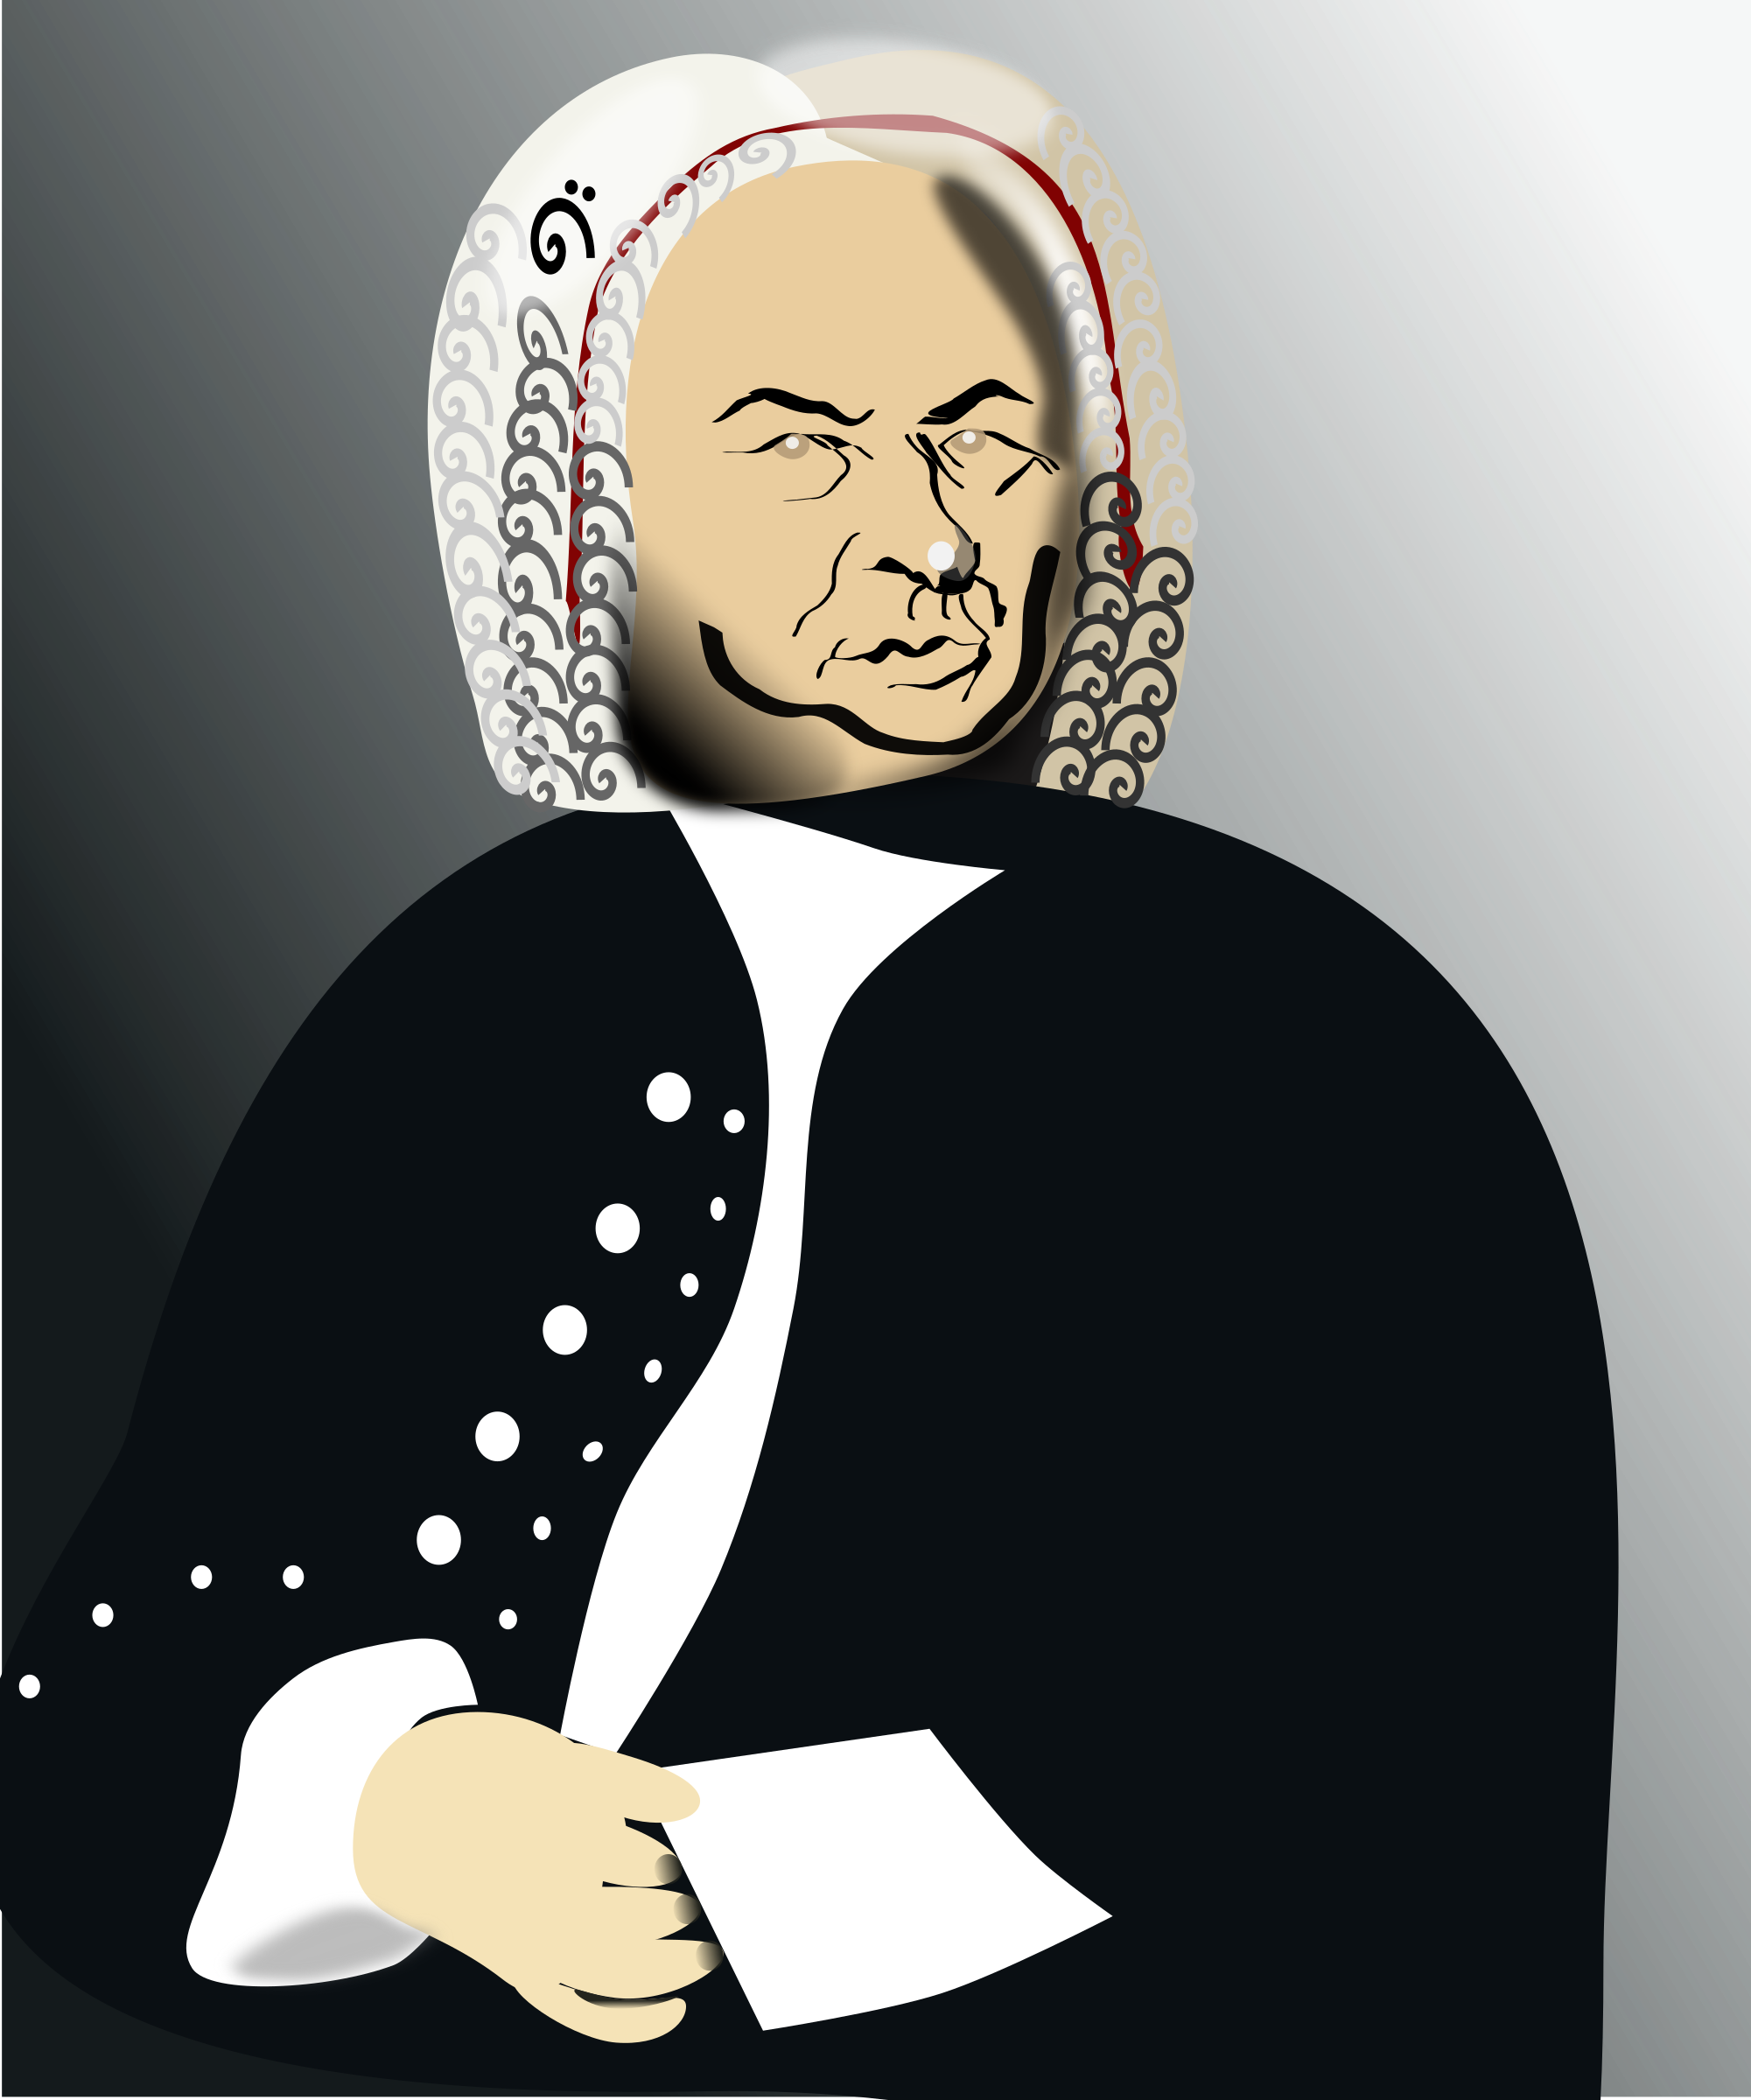 J. S. Bach by user unknown